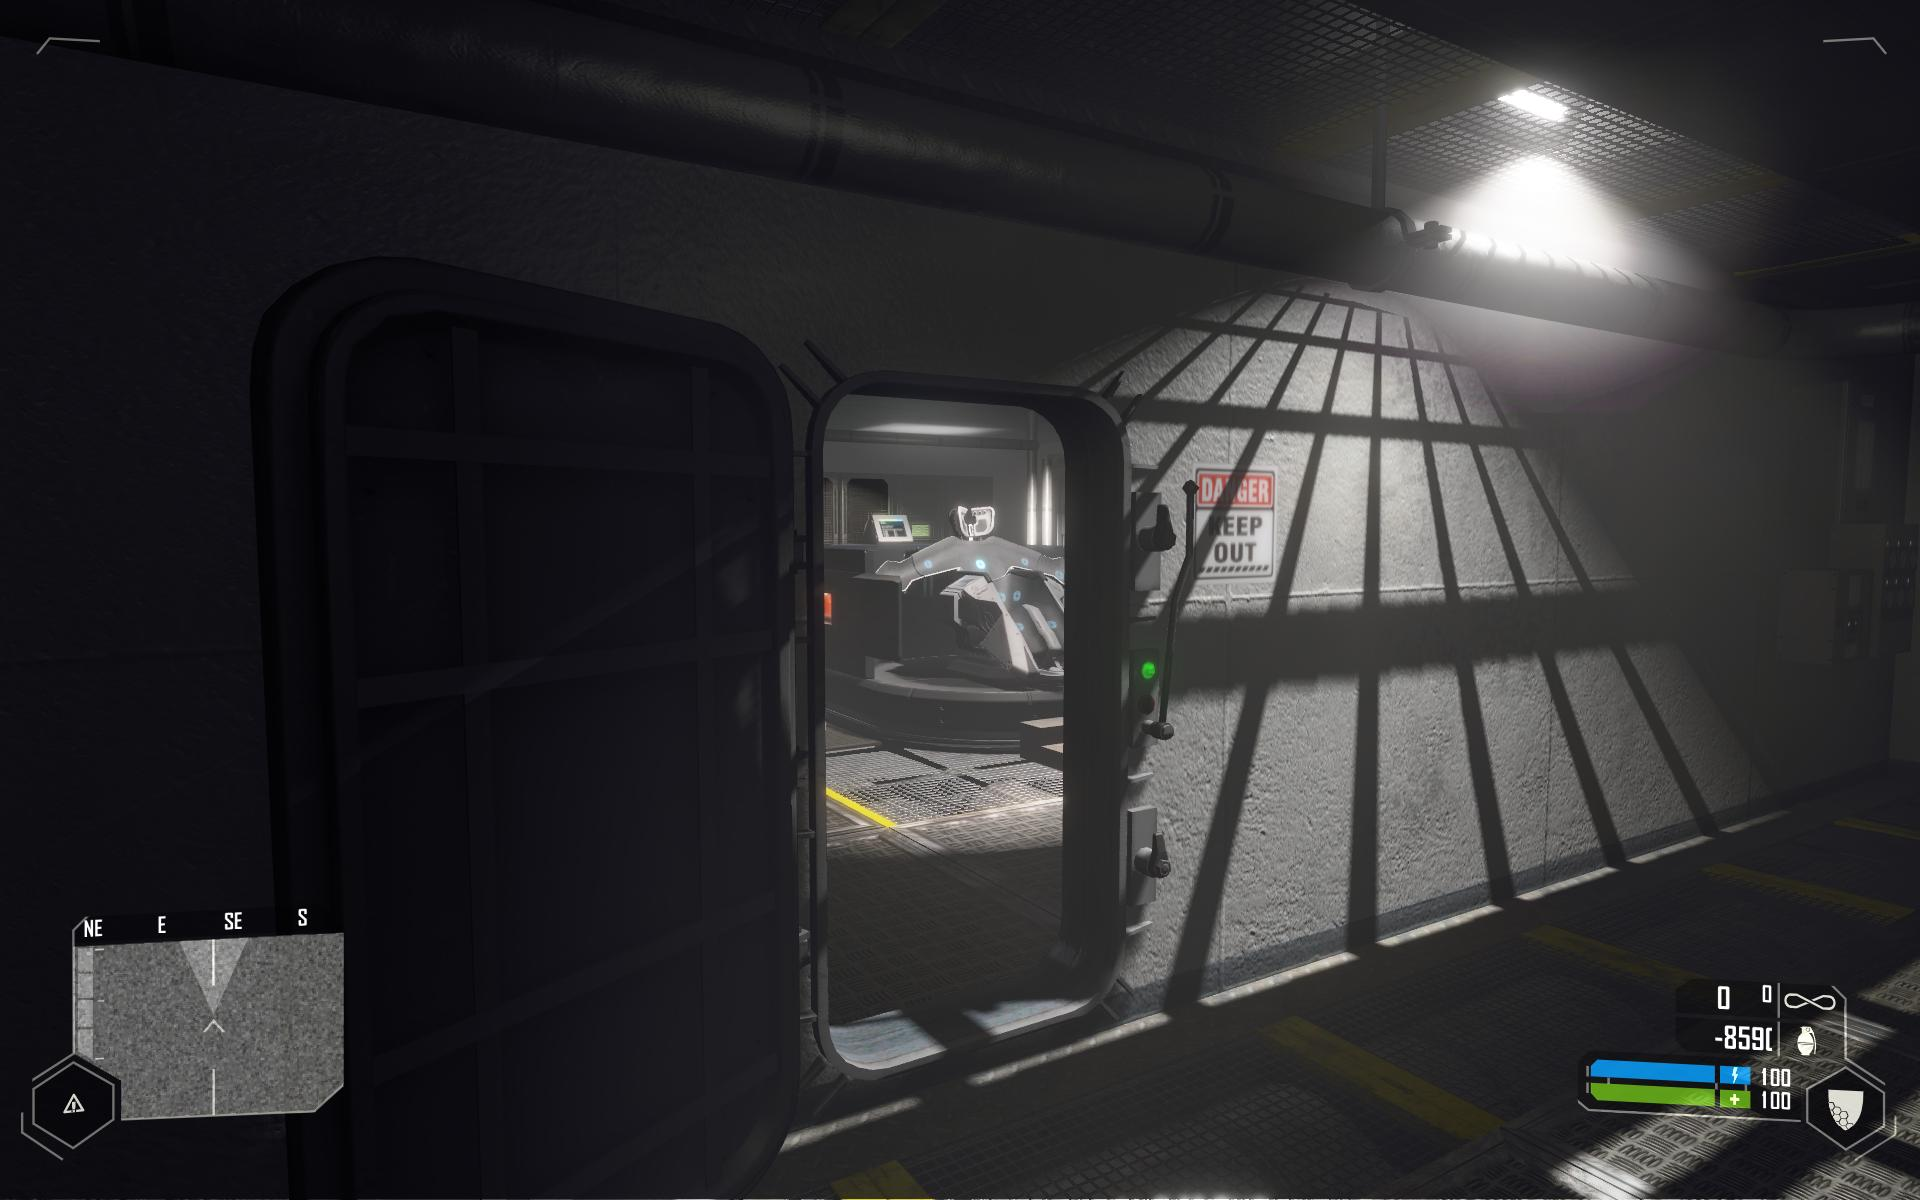 (view original). New Dynamic lighting! & Images - The Mutant Factor mod for Crysis - Mod DB azcodes.com